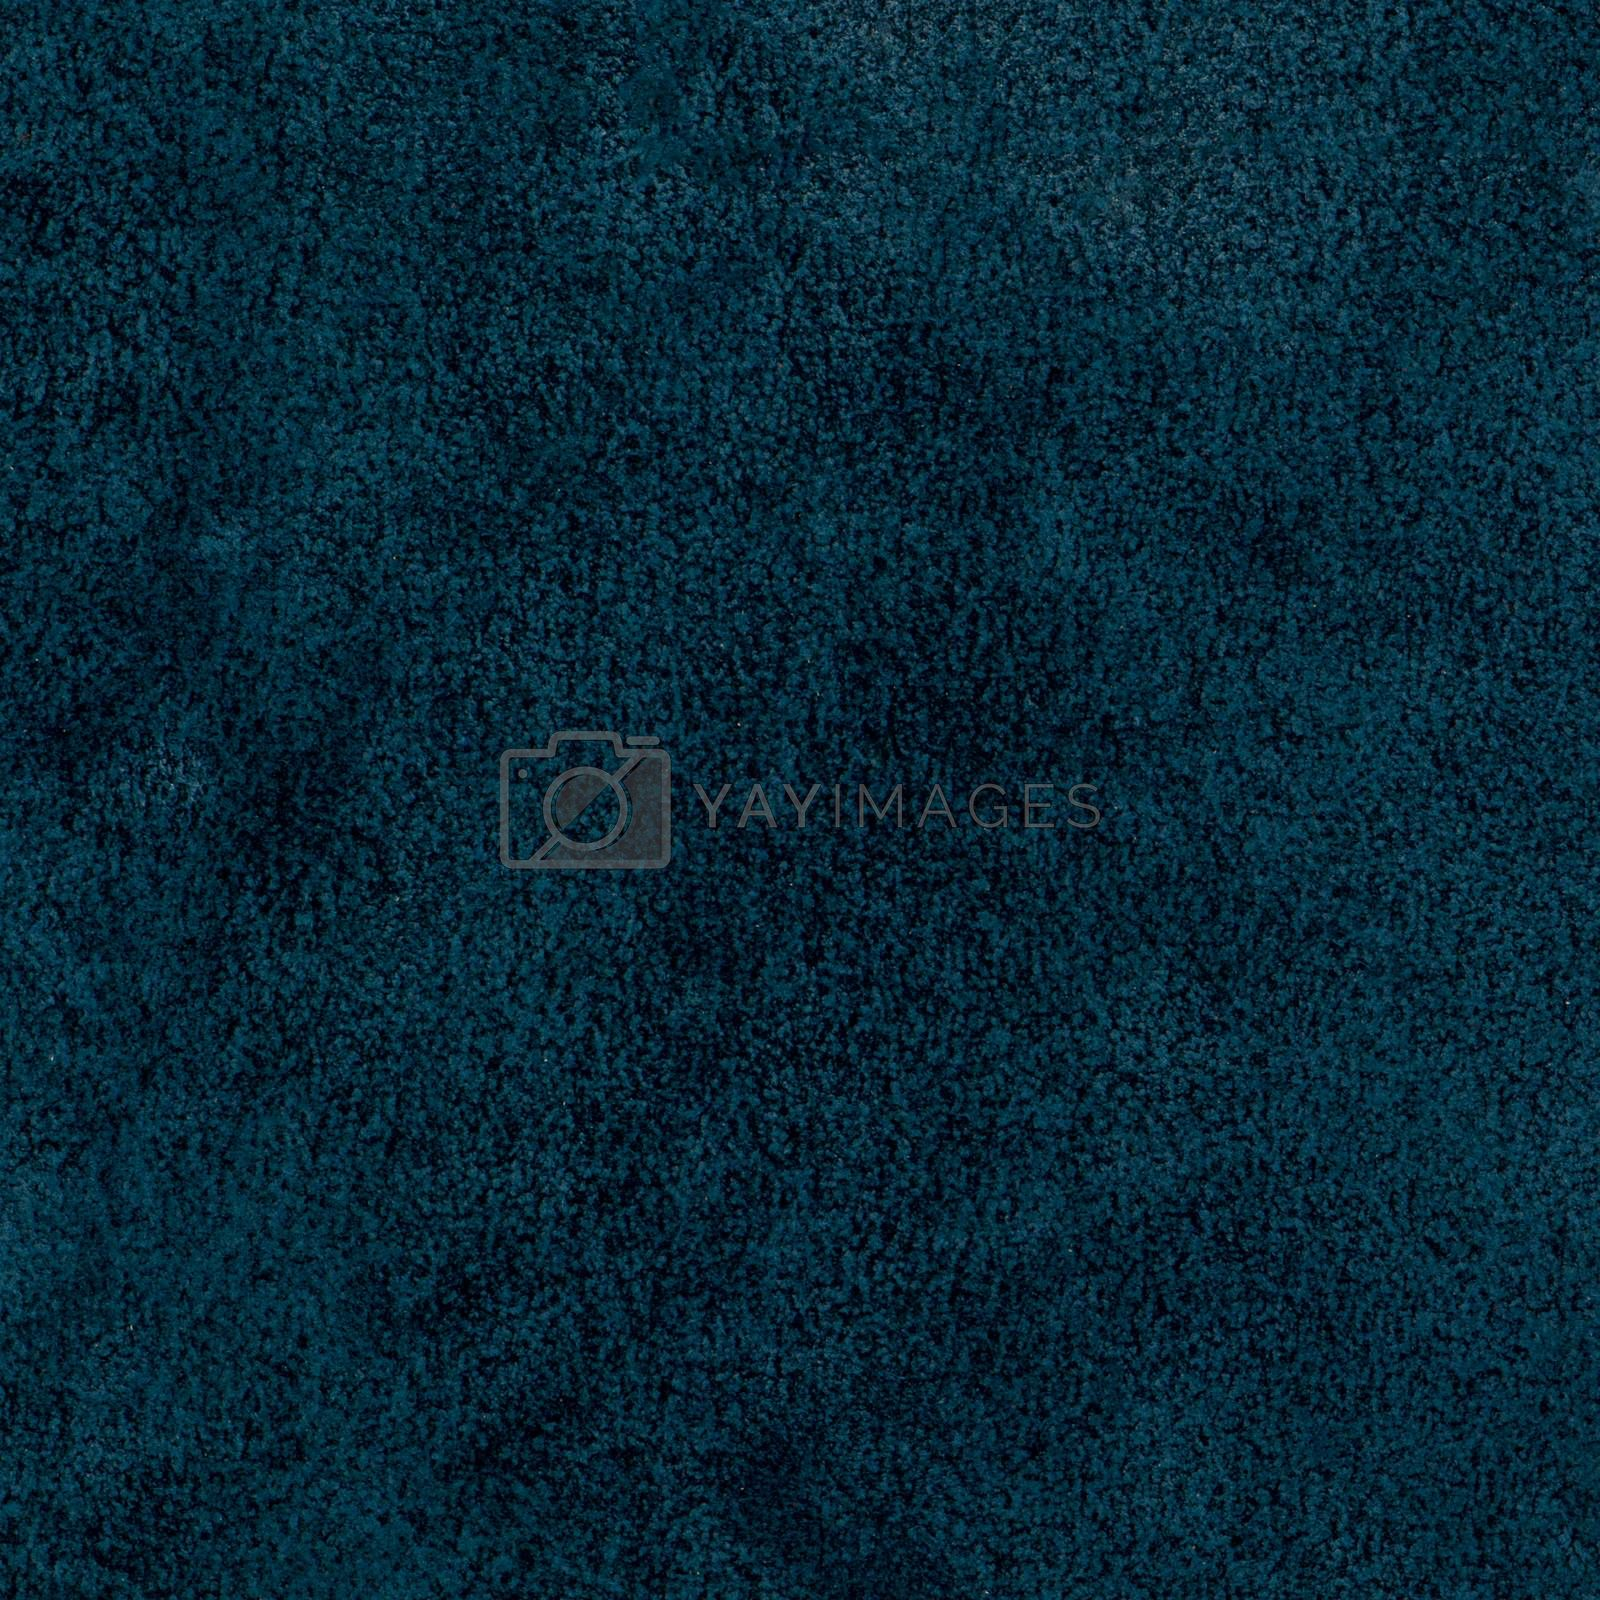 Royalty free image of Blue leather  by homydesign